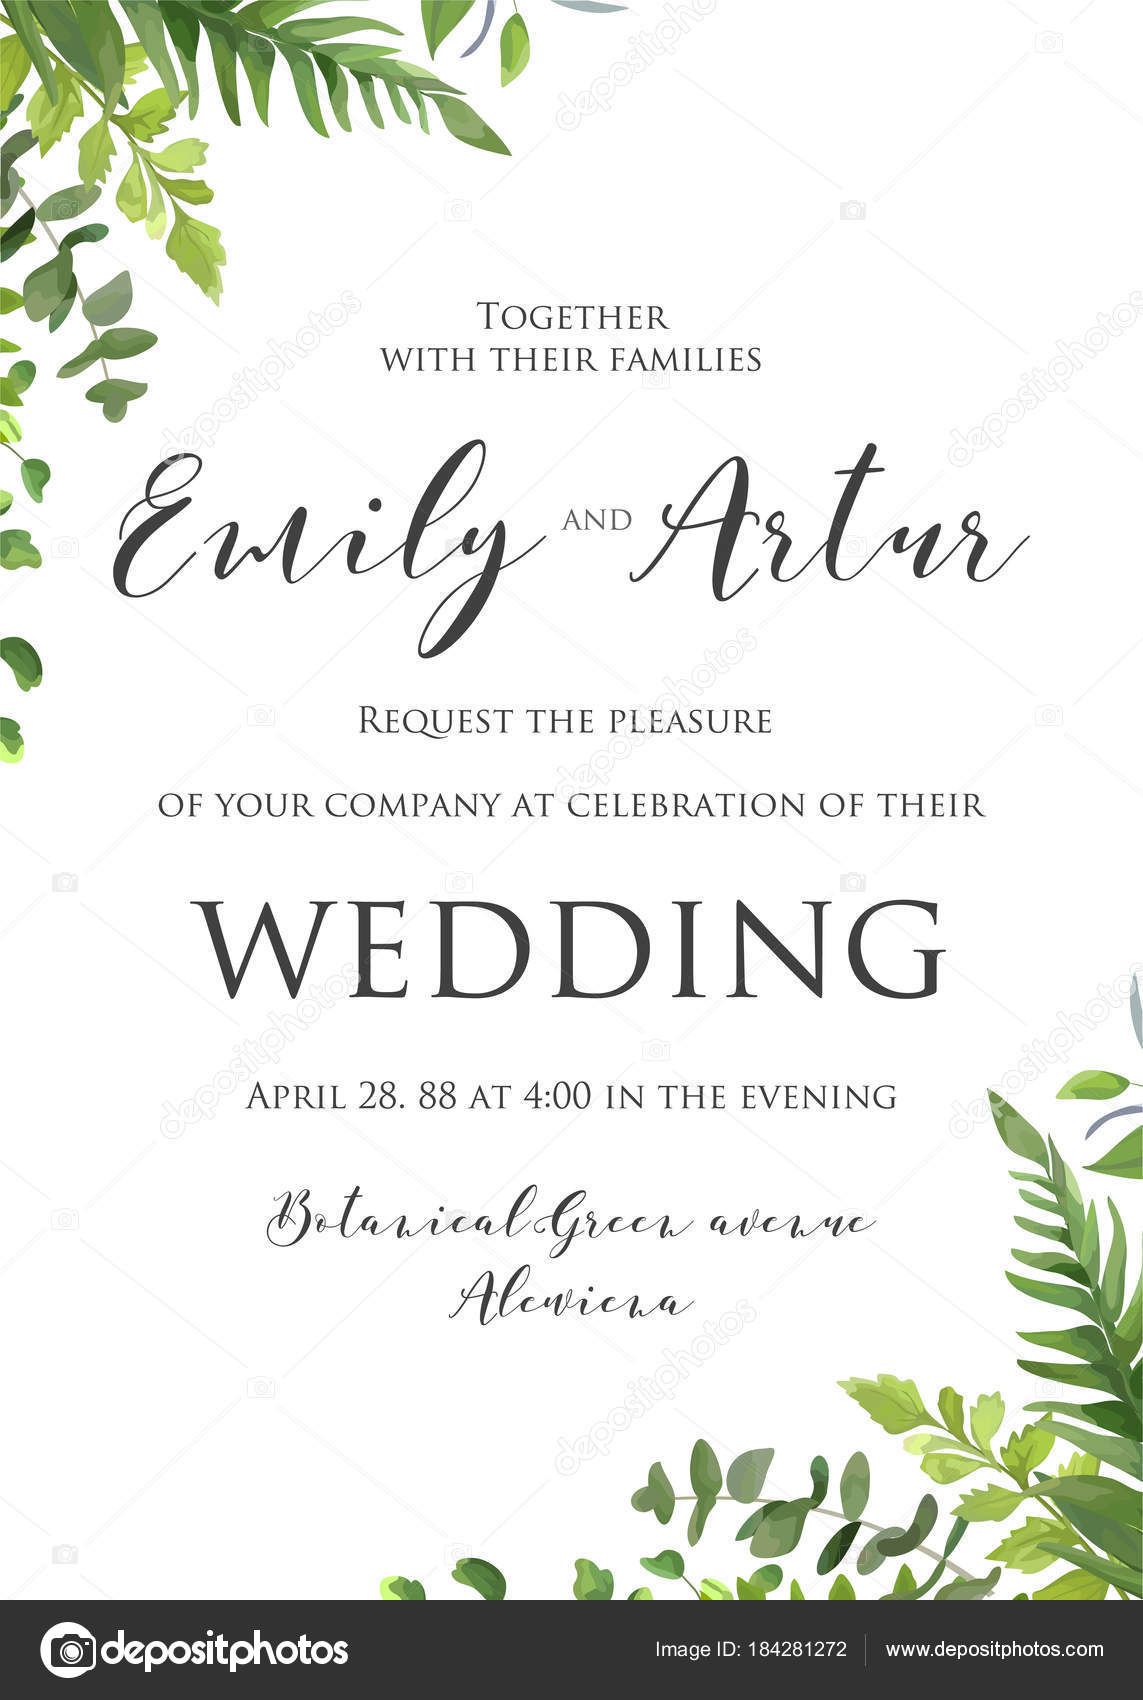 The Date Card Floral Design With Green Fern Leaves Forest Plants Greenery Herbal Mix Frame Border Beautiful Rustic Template Vector By Alewiena